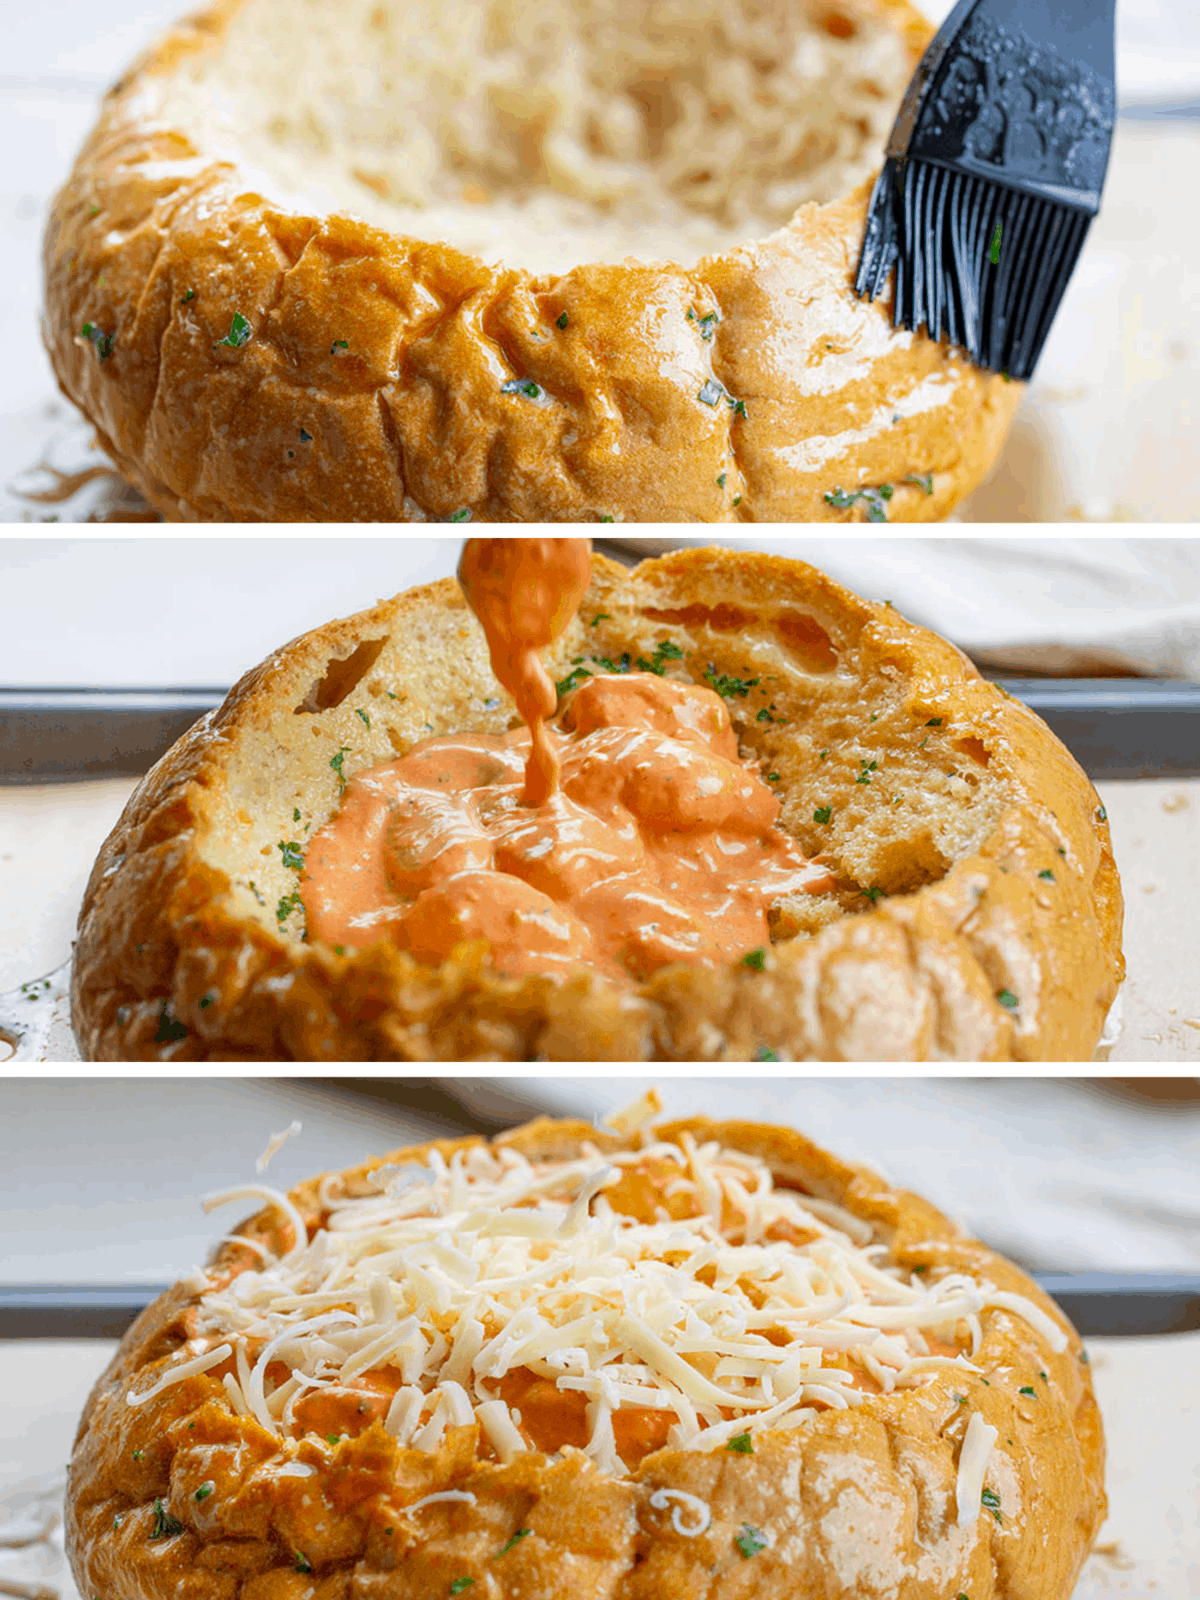 Process Images of How to Prepare Bread Bowl for SPicy Gnocchi